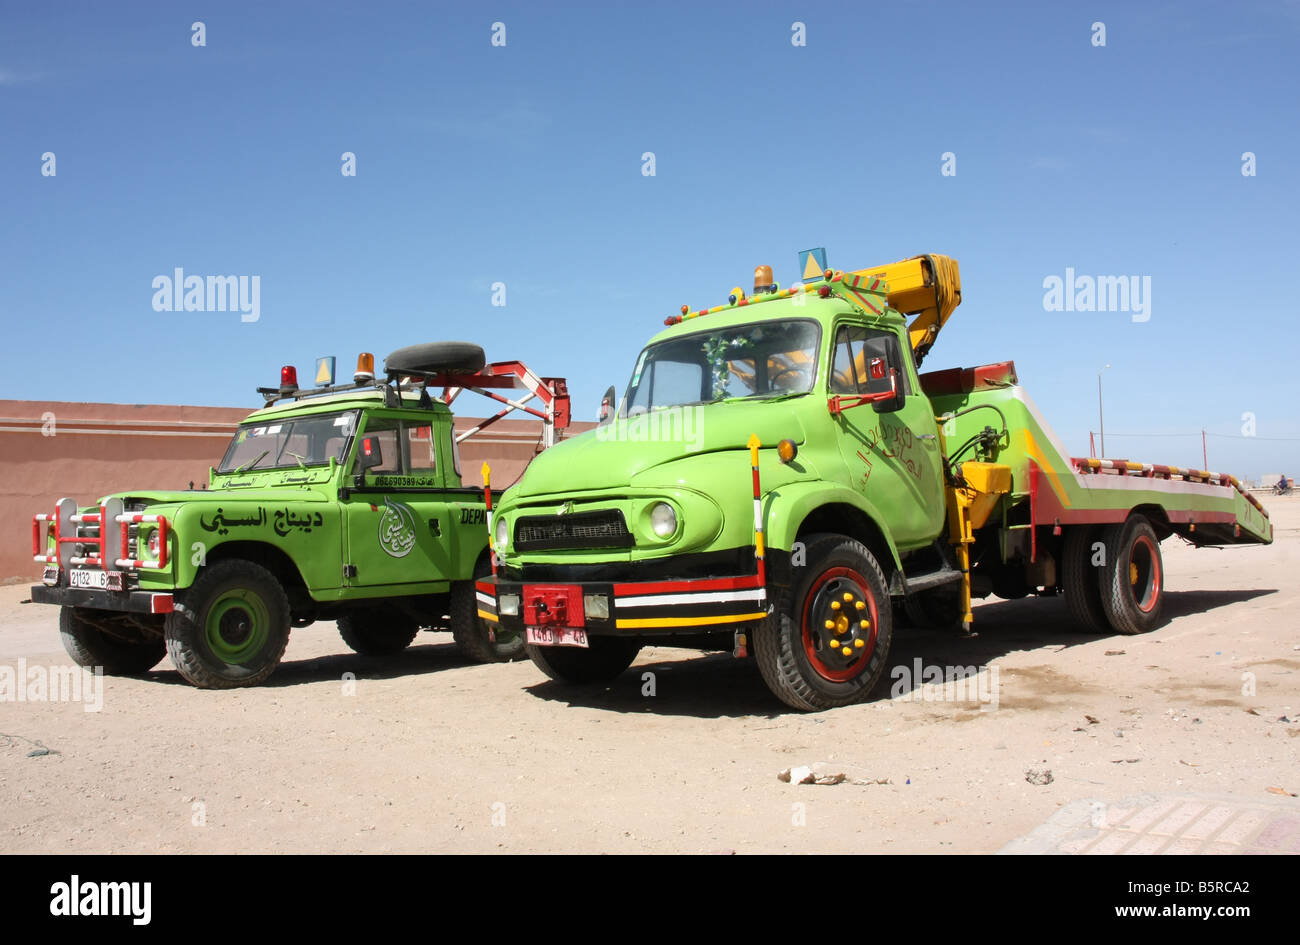 Vintage breakdown trucks in Dakhla Western Sahara - Stock Image